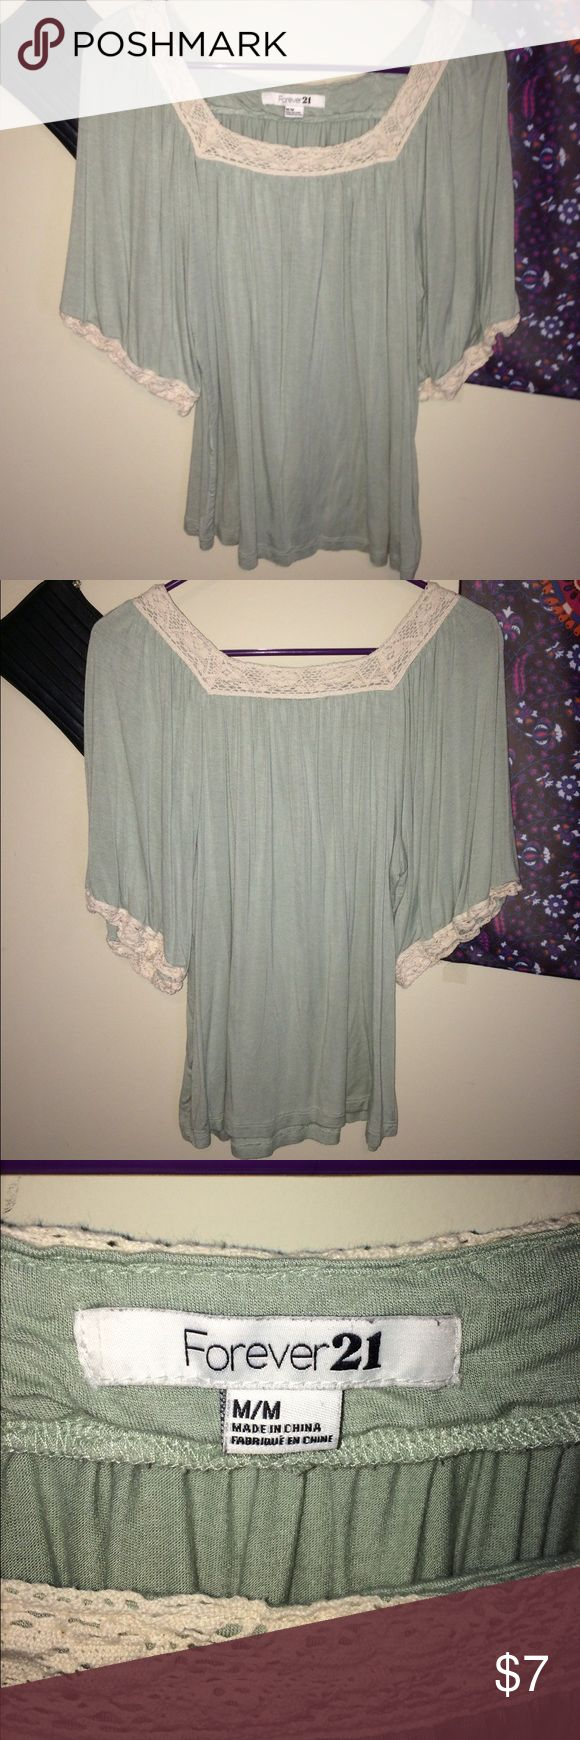 Forever 21 green w/ cream lace top Good condition-lightly worn. No rips snags or stains. From a smoke free environment. Size M but can fit size S Forever 21 Tops Blouses